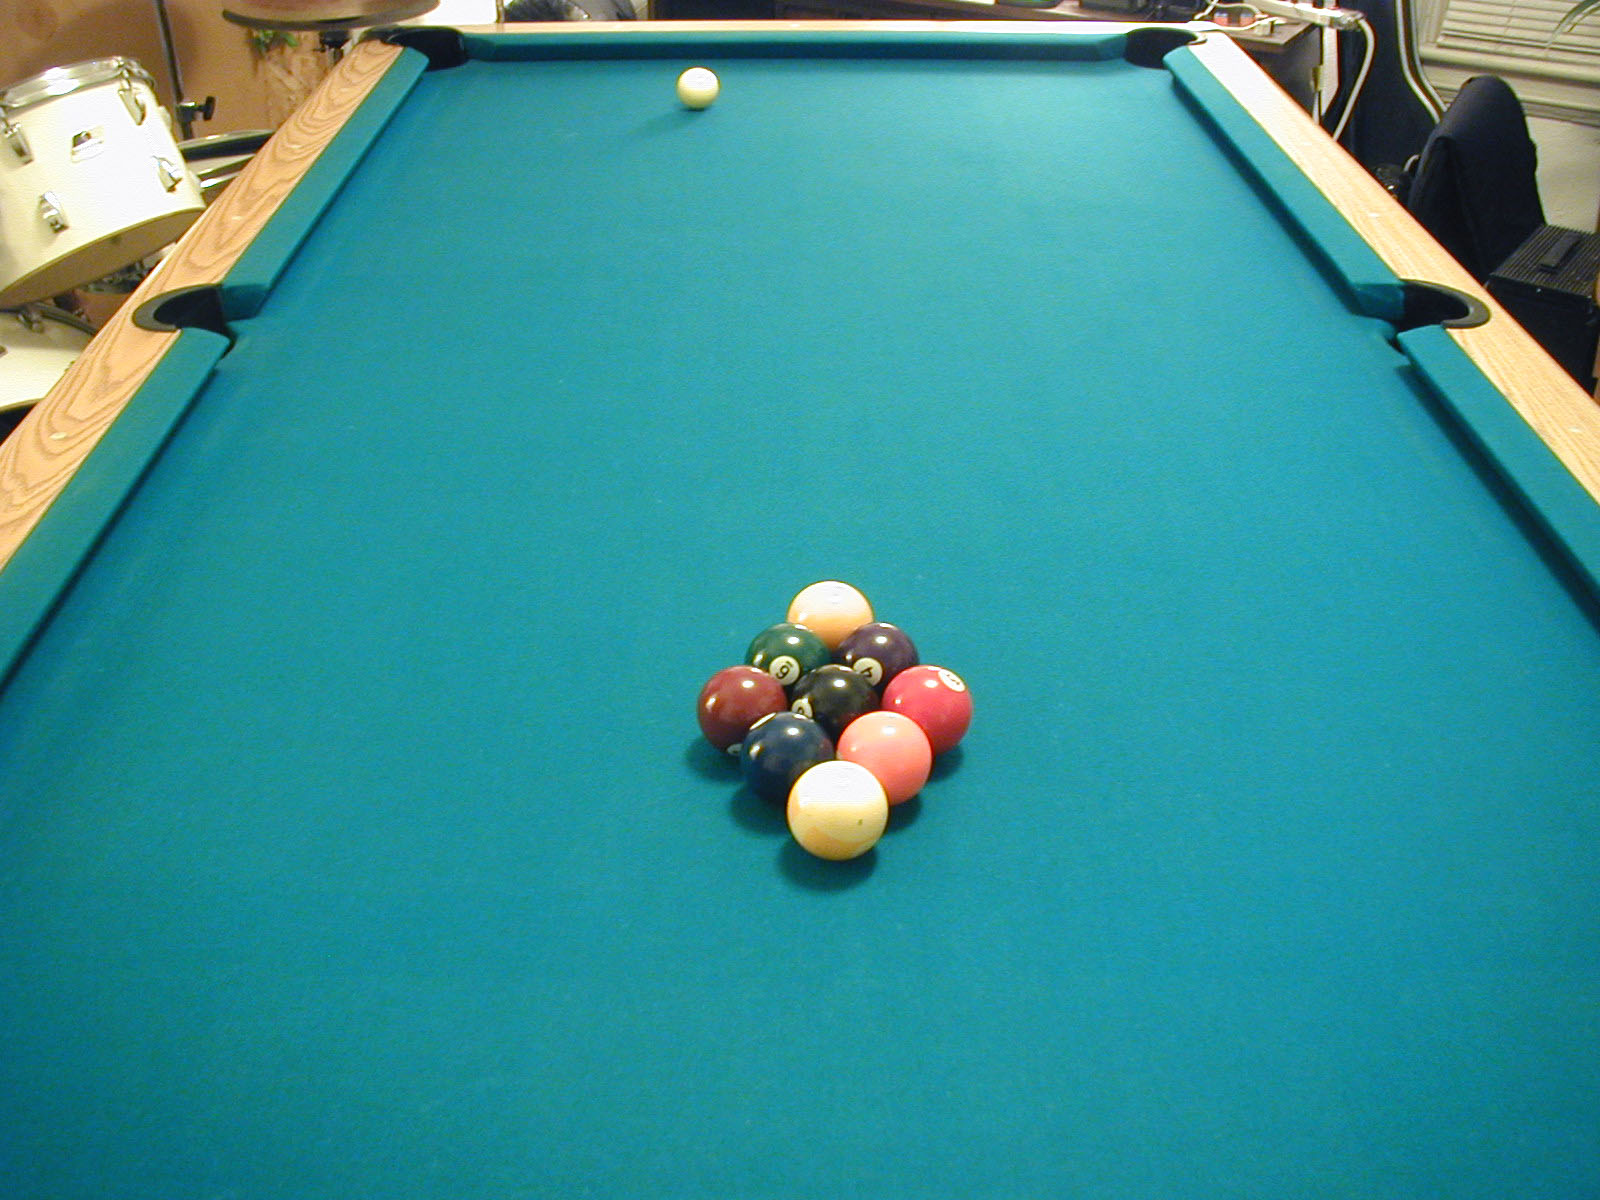 Pool Table Buying Guide - Home Theater Seating, Pool Tables, Game